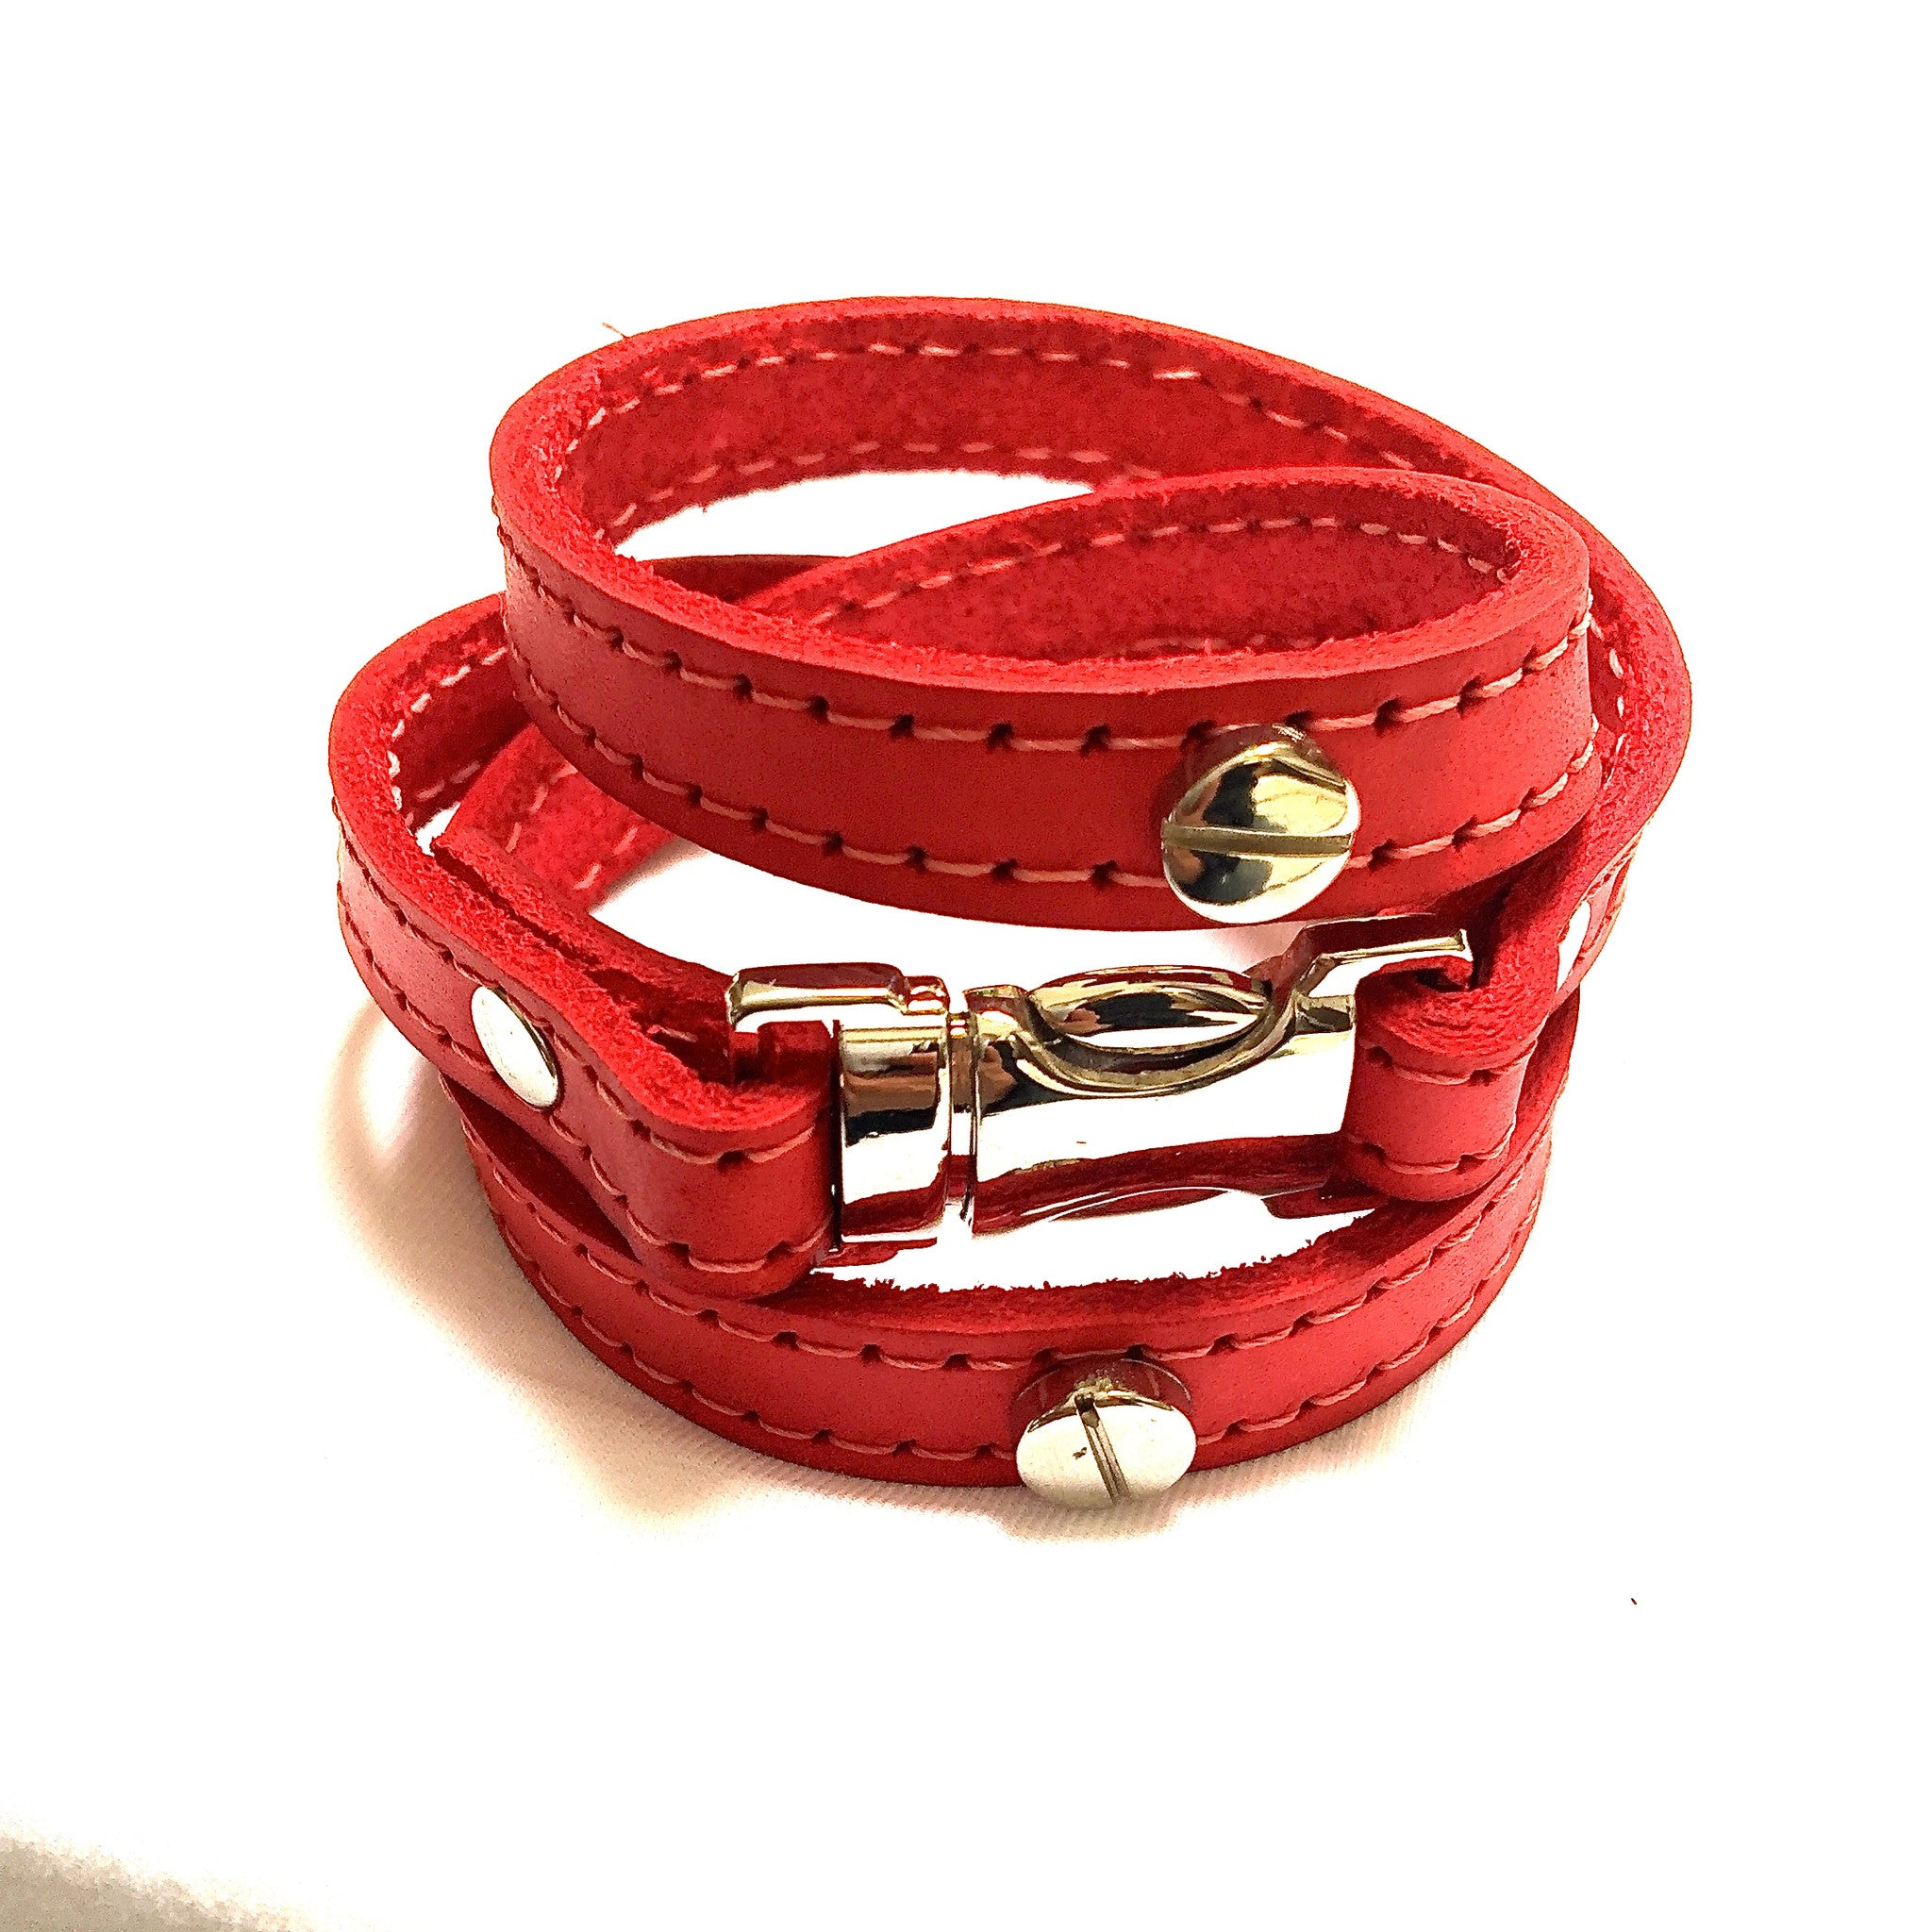 Quicksnap wraparound bracelet stitched leather